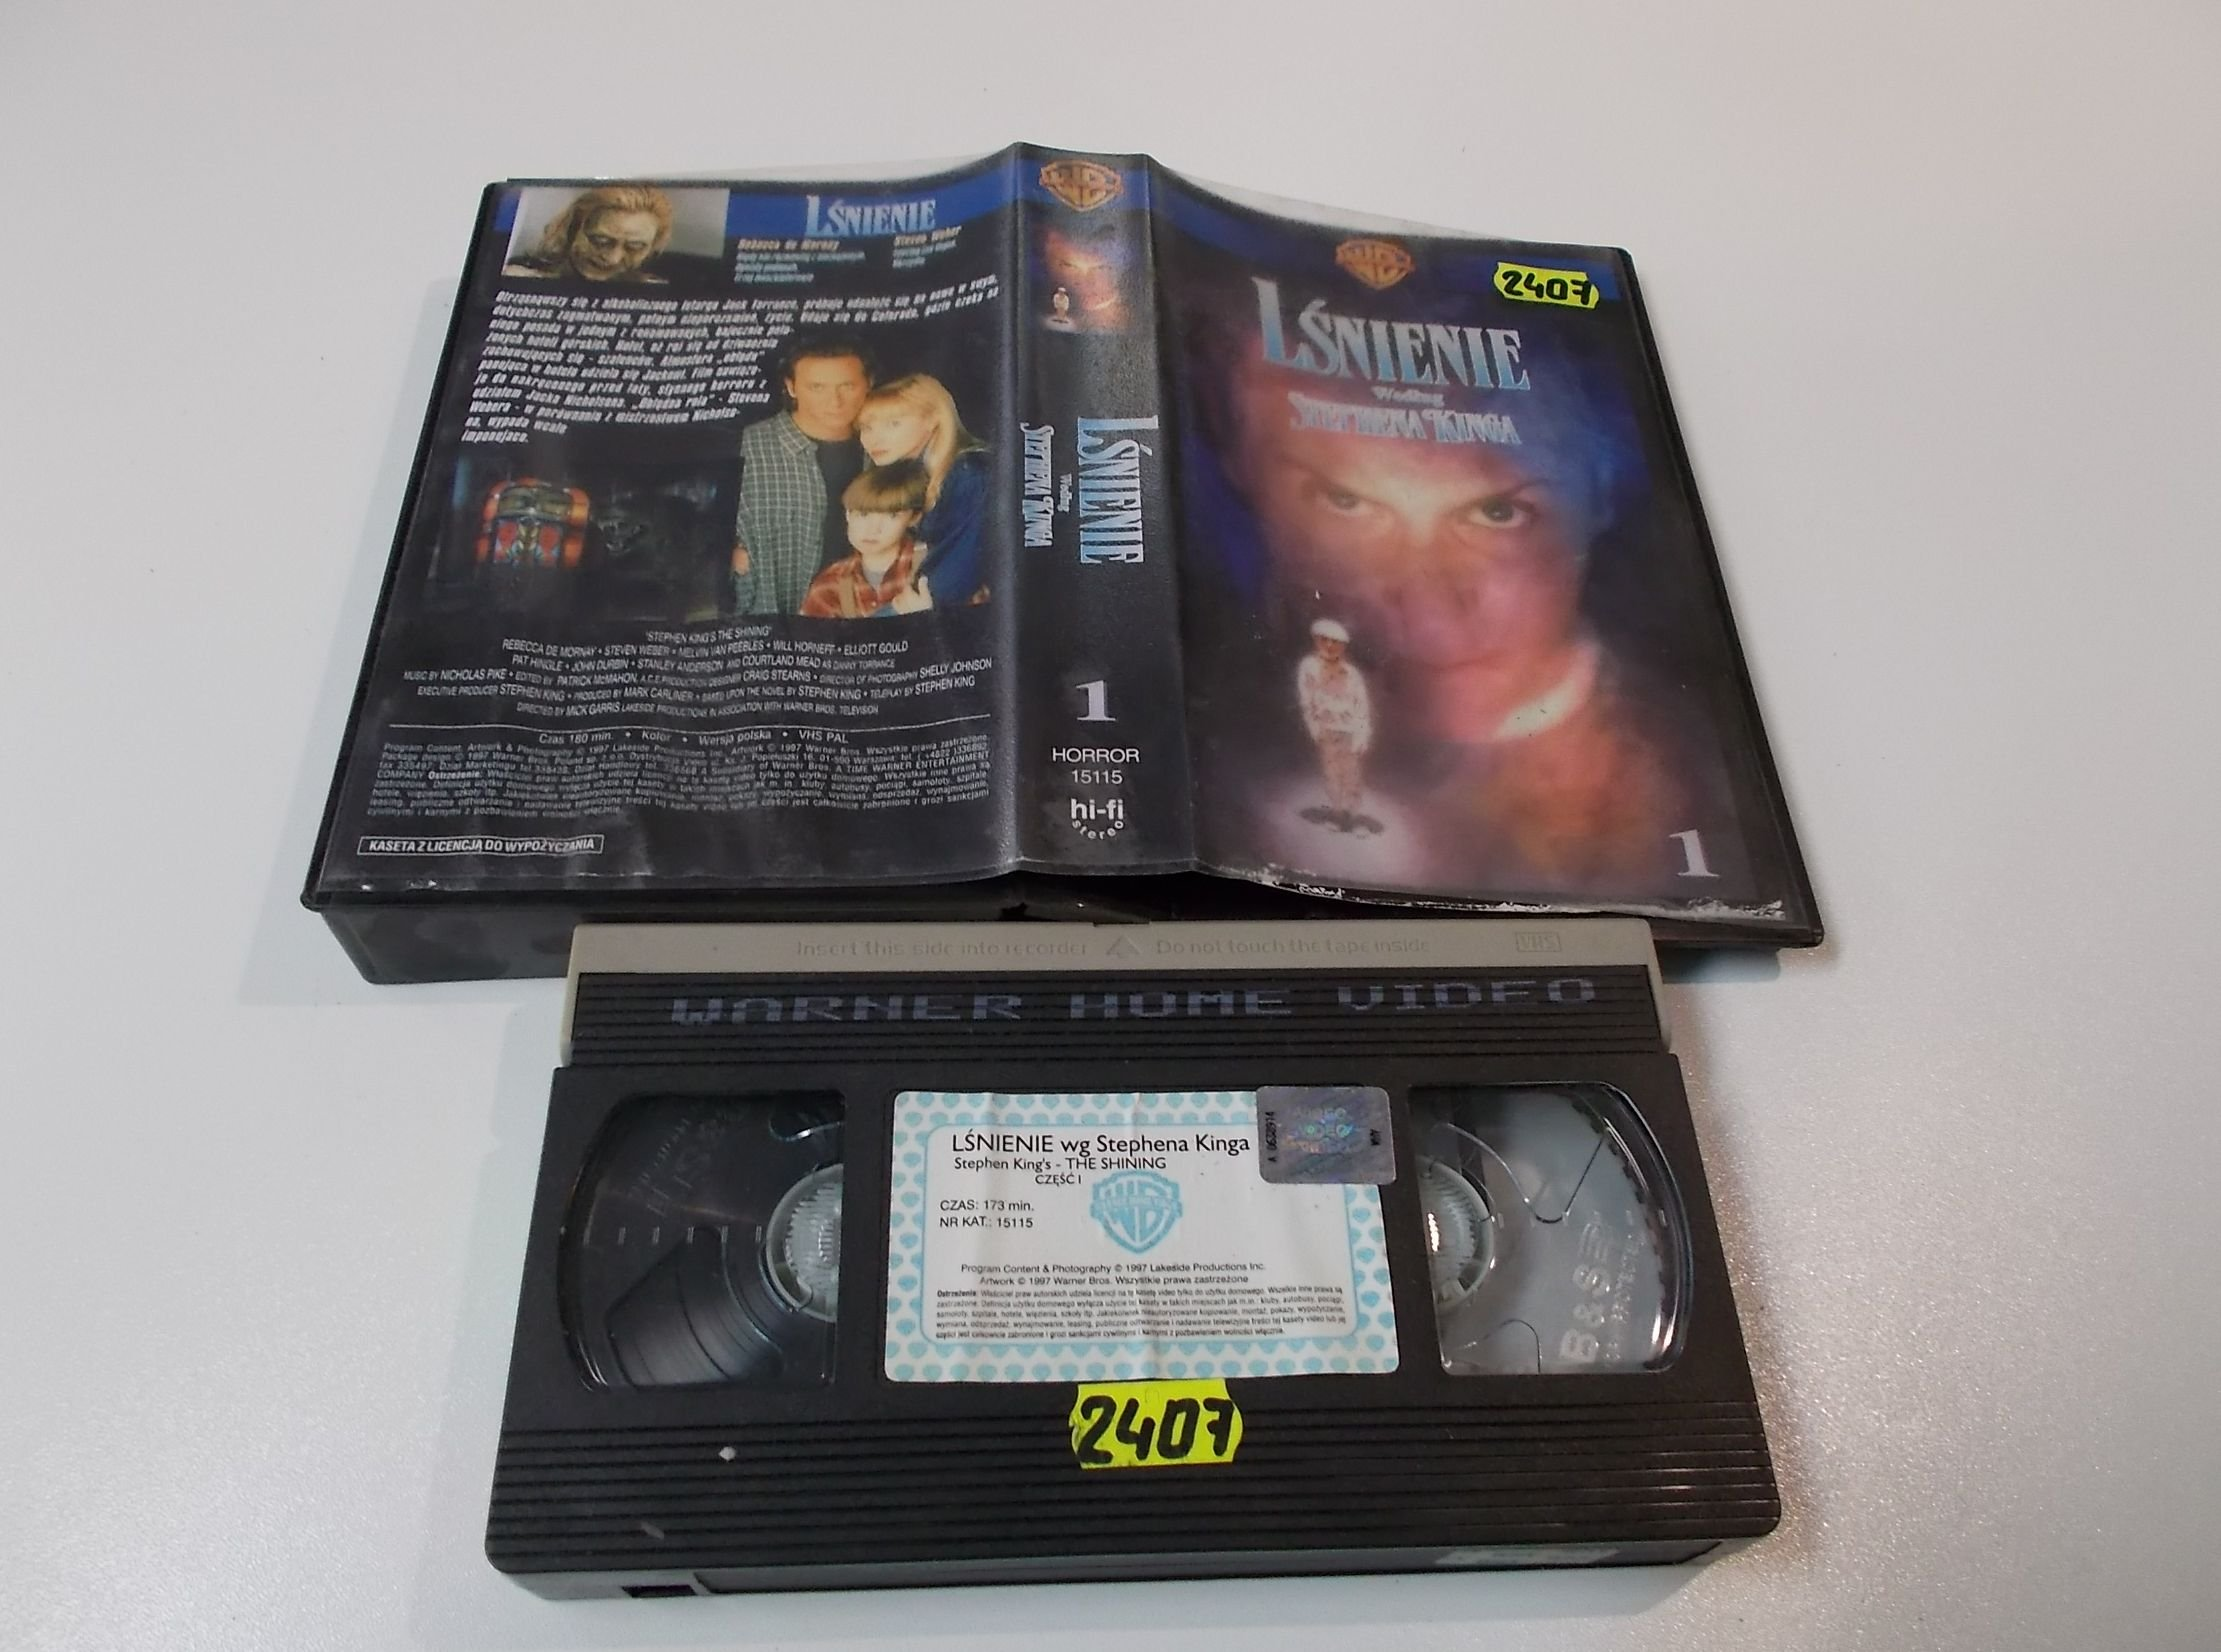 LŚNIENIE - Stephen King's  - Kaseta Video VHS - Opole 1587